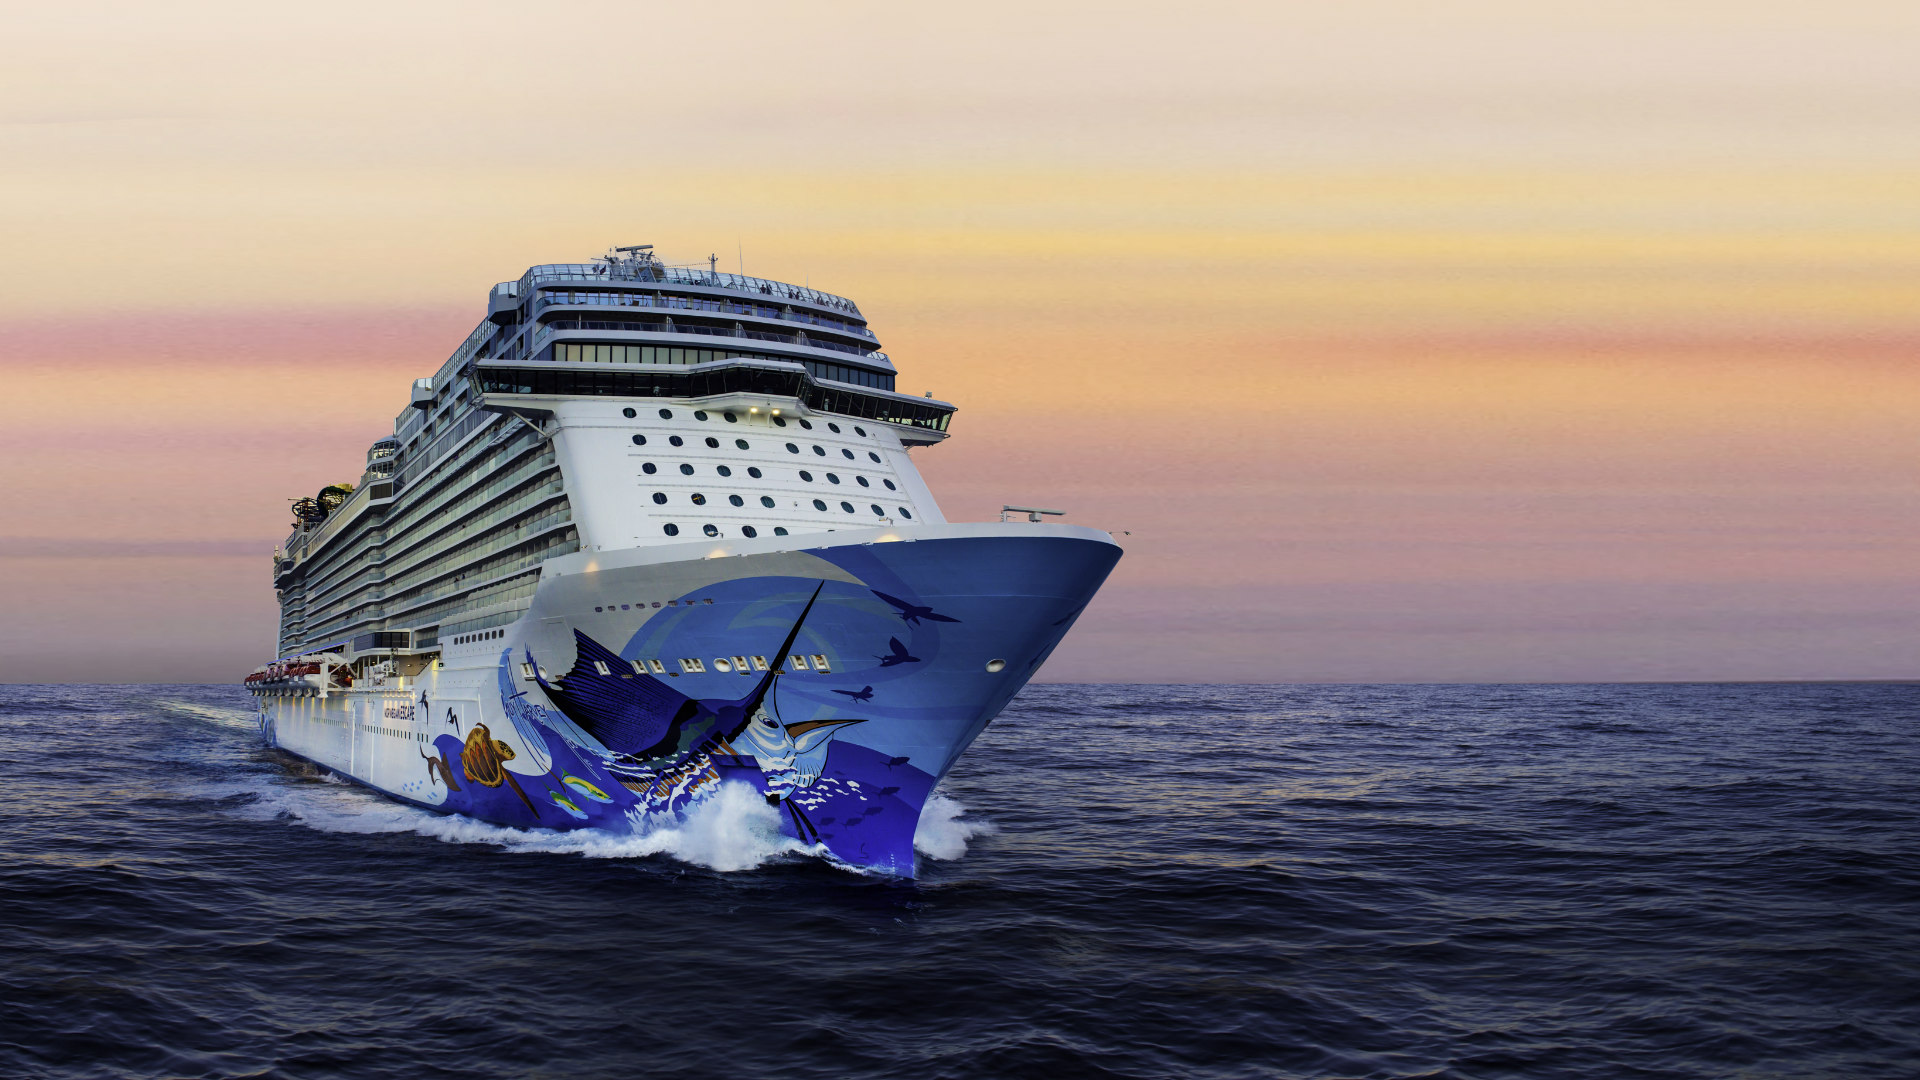 Here S What Happens When A New Cruise Ship Launches Shermanstravel